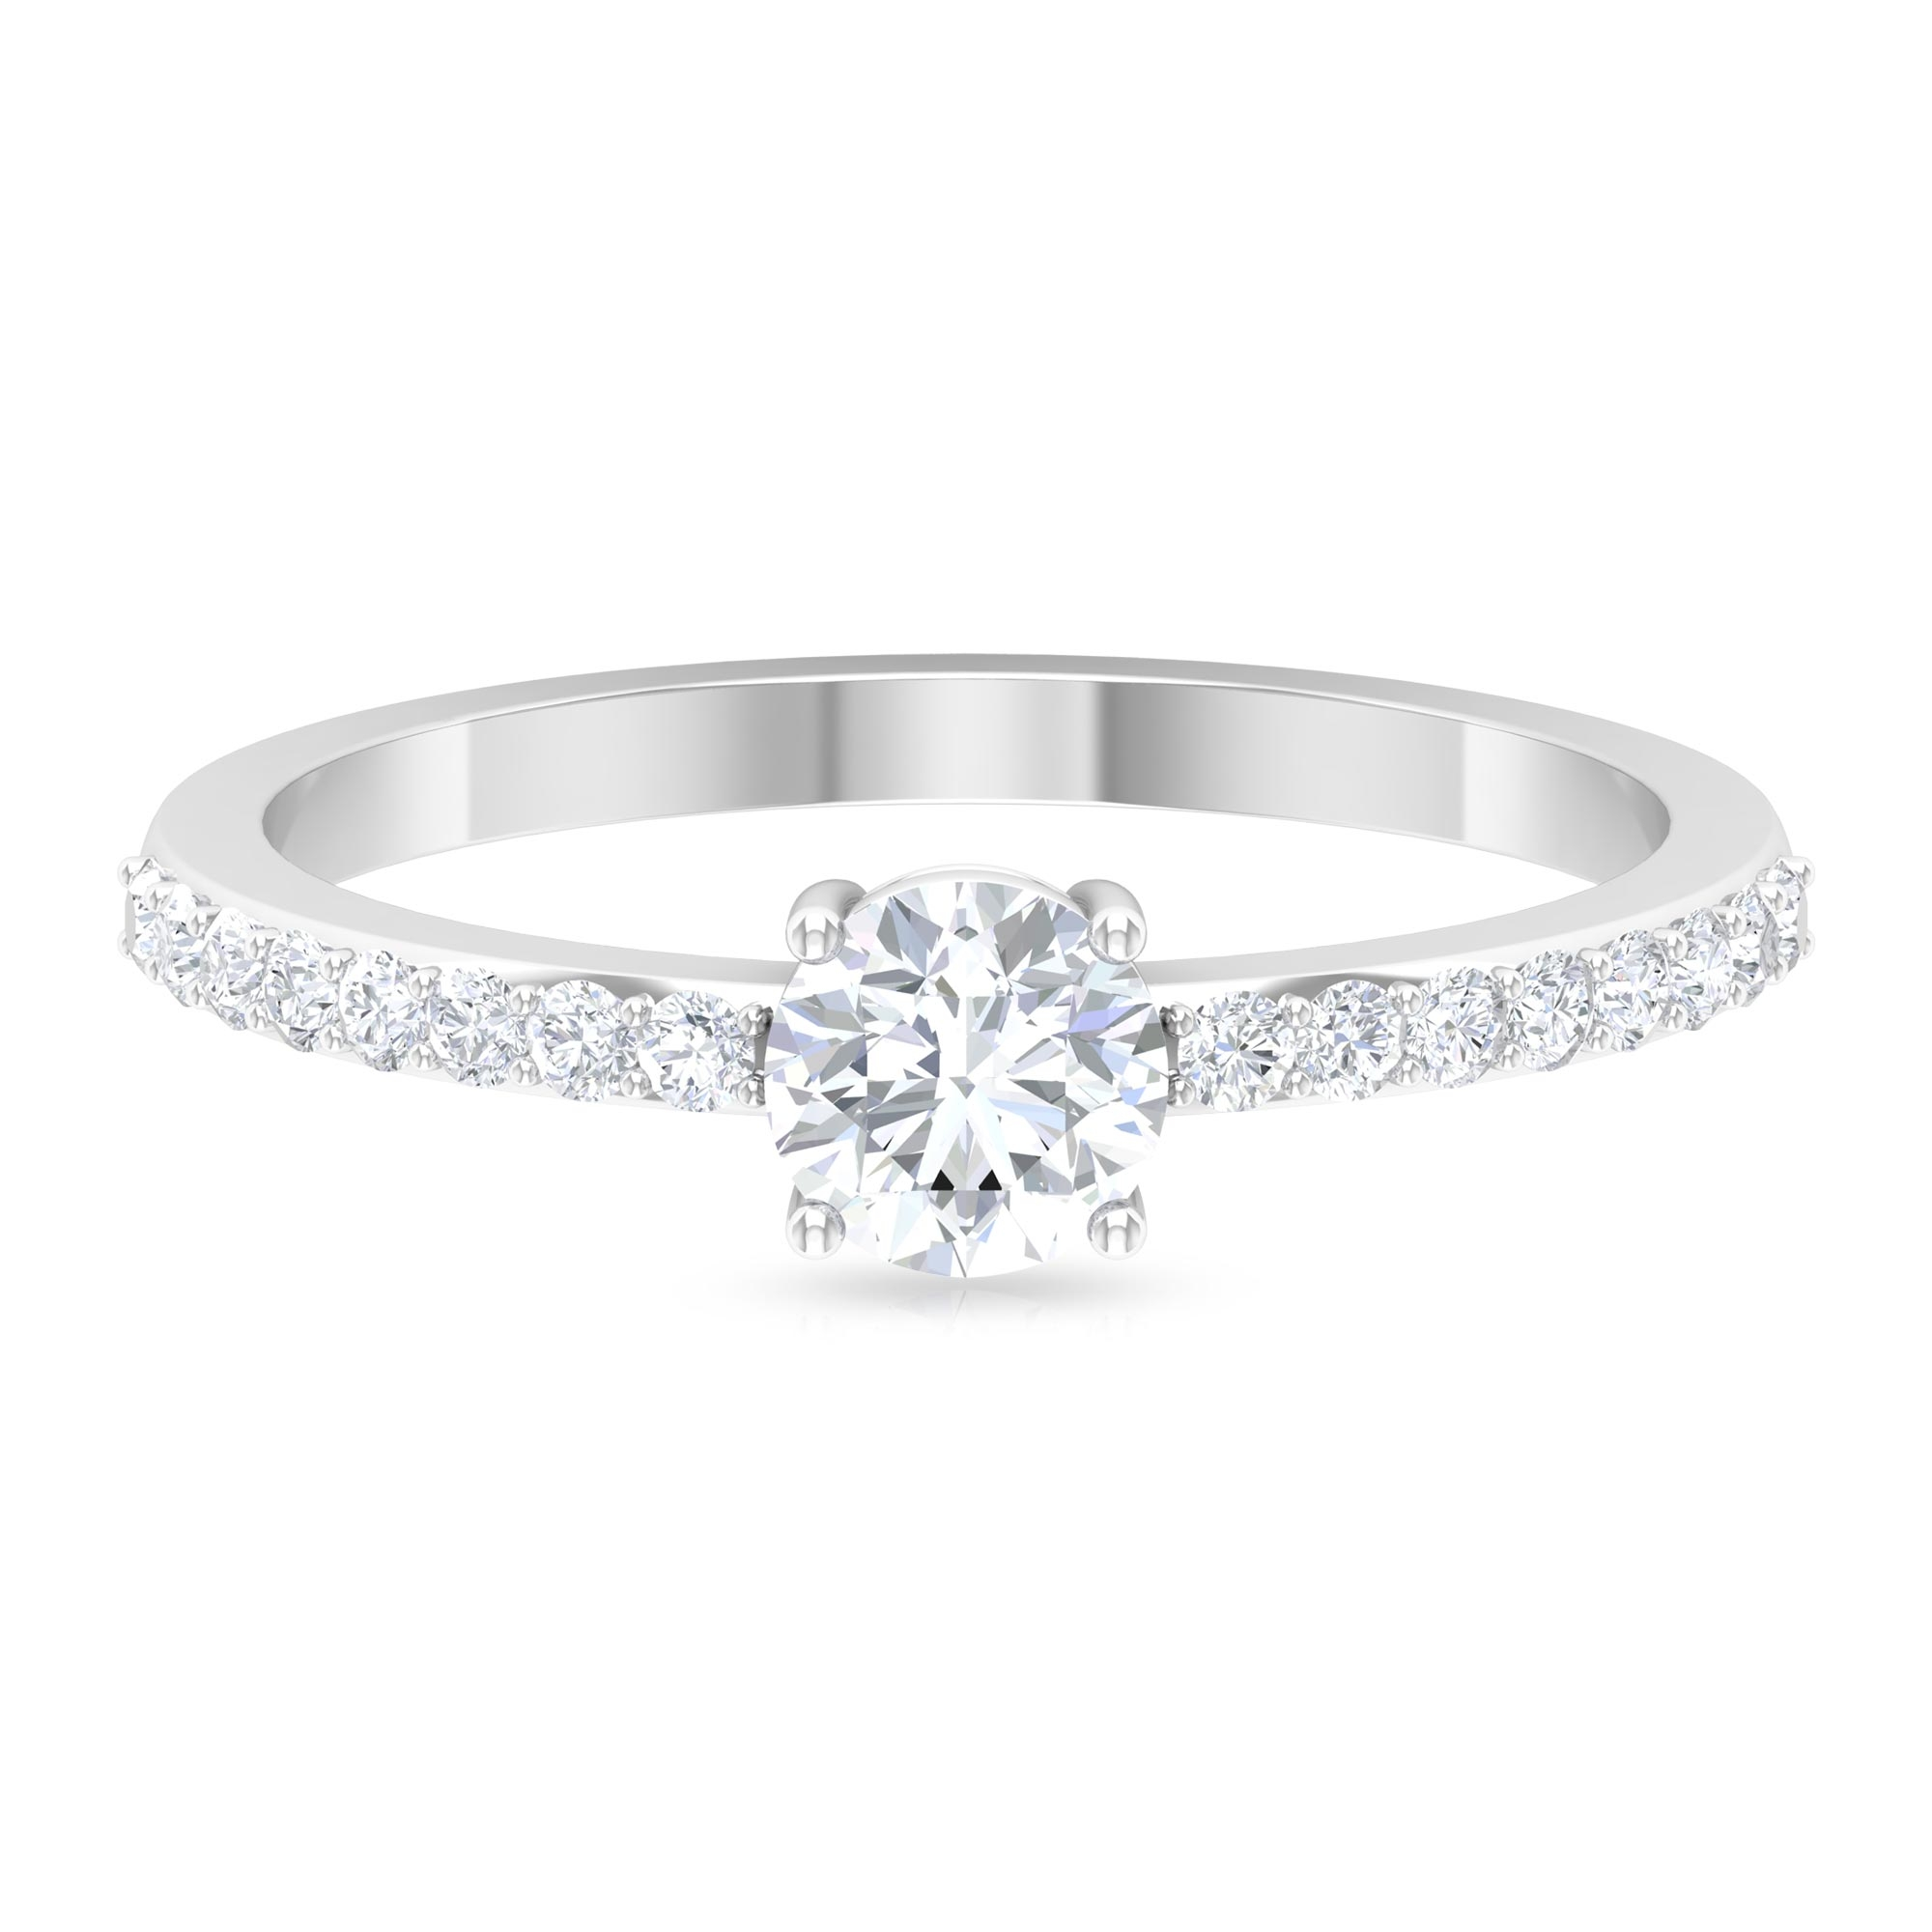 3/4 CT Round Cut Diamond Solitaire Ring in 4 Prong Setting with Surface Side Stones